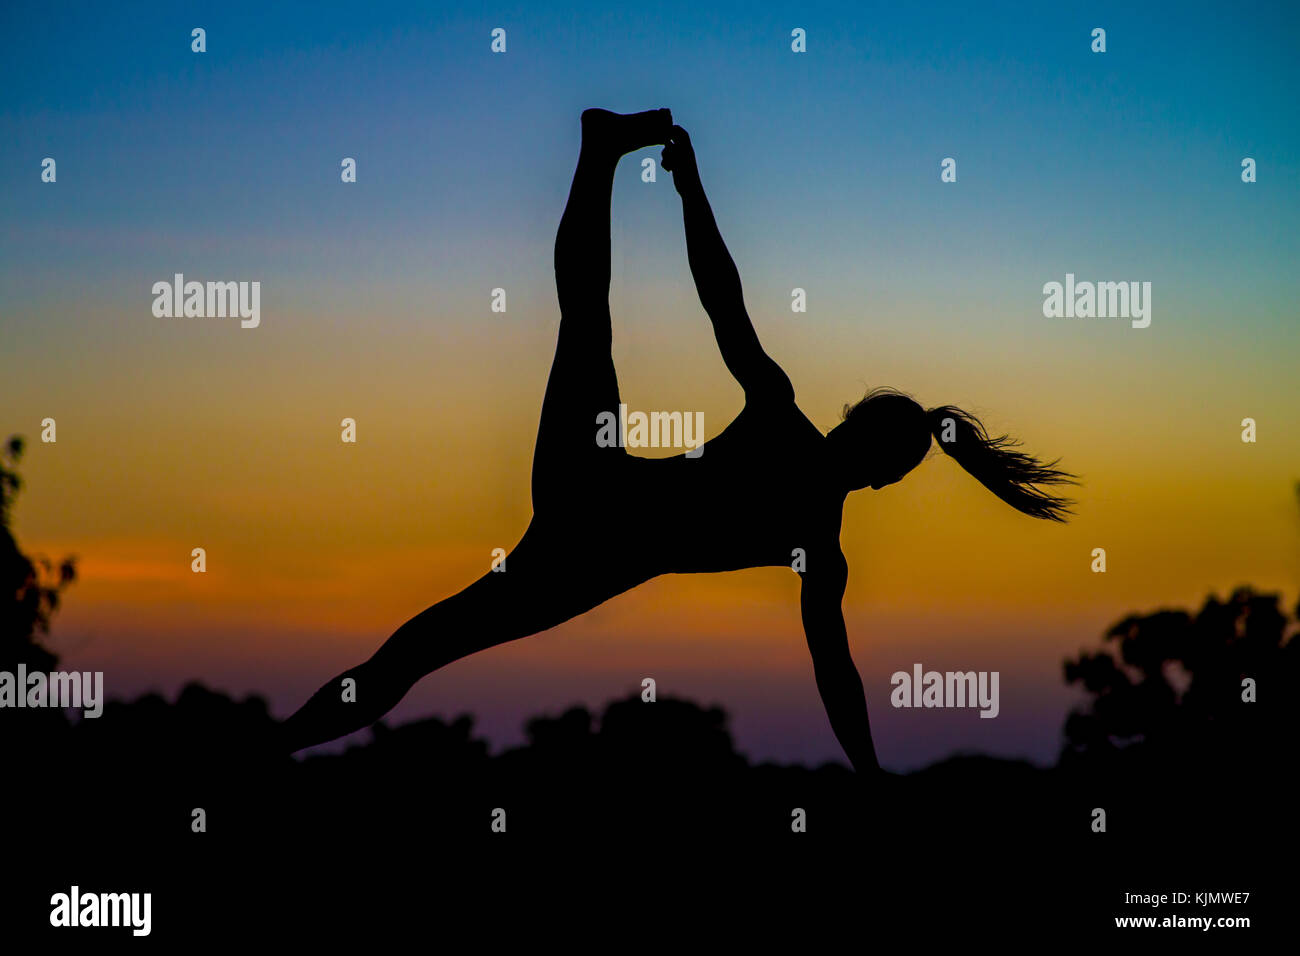 Woman doing yoga as a silhouette in front of a sunset. - Stock Image